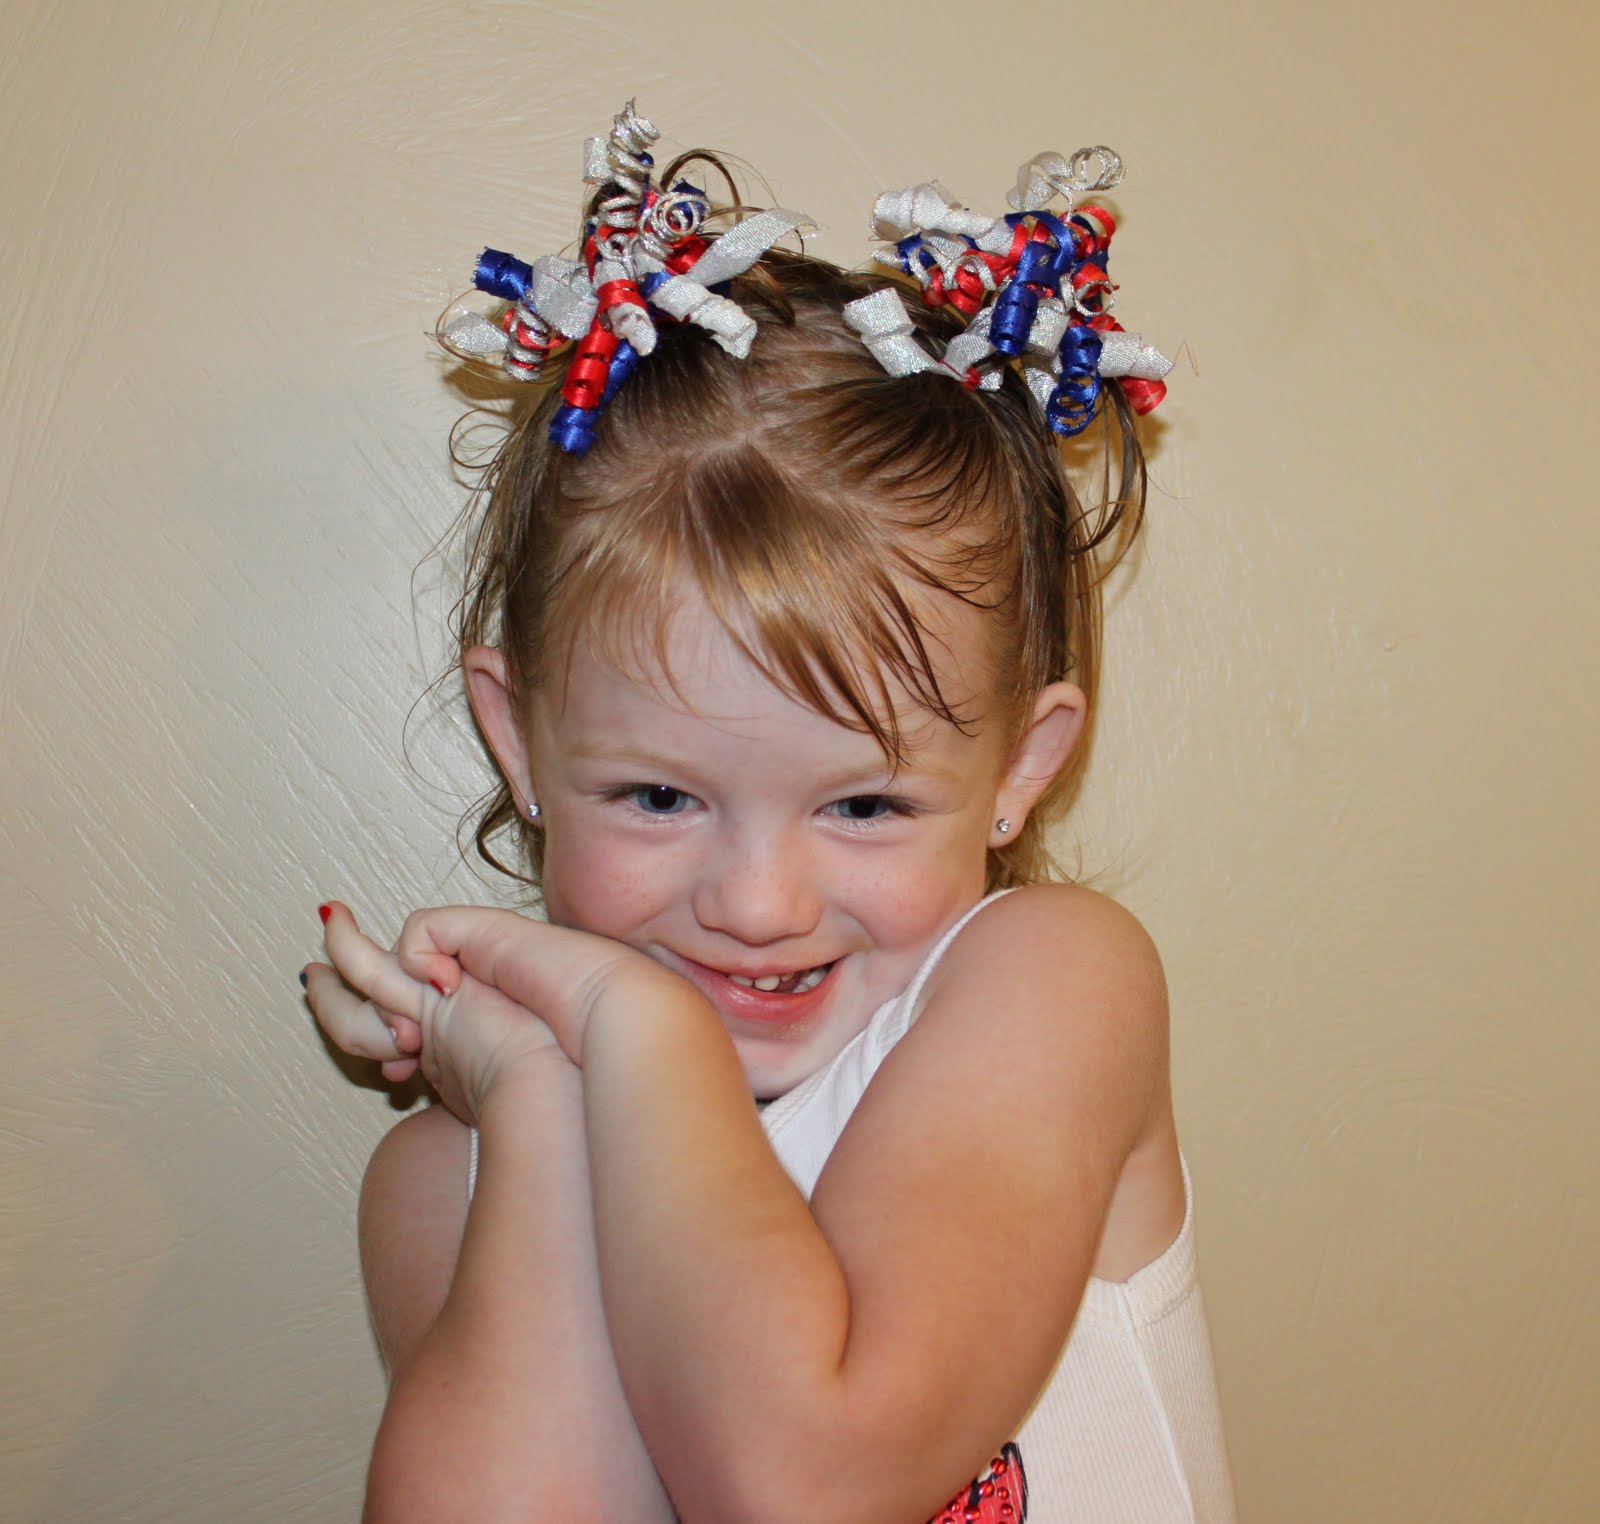 Hairstyles For Girls The Wright Hair 4th Of July Fun Toddler